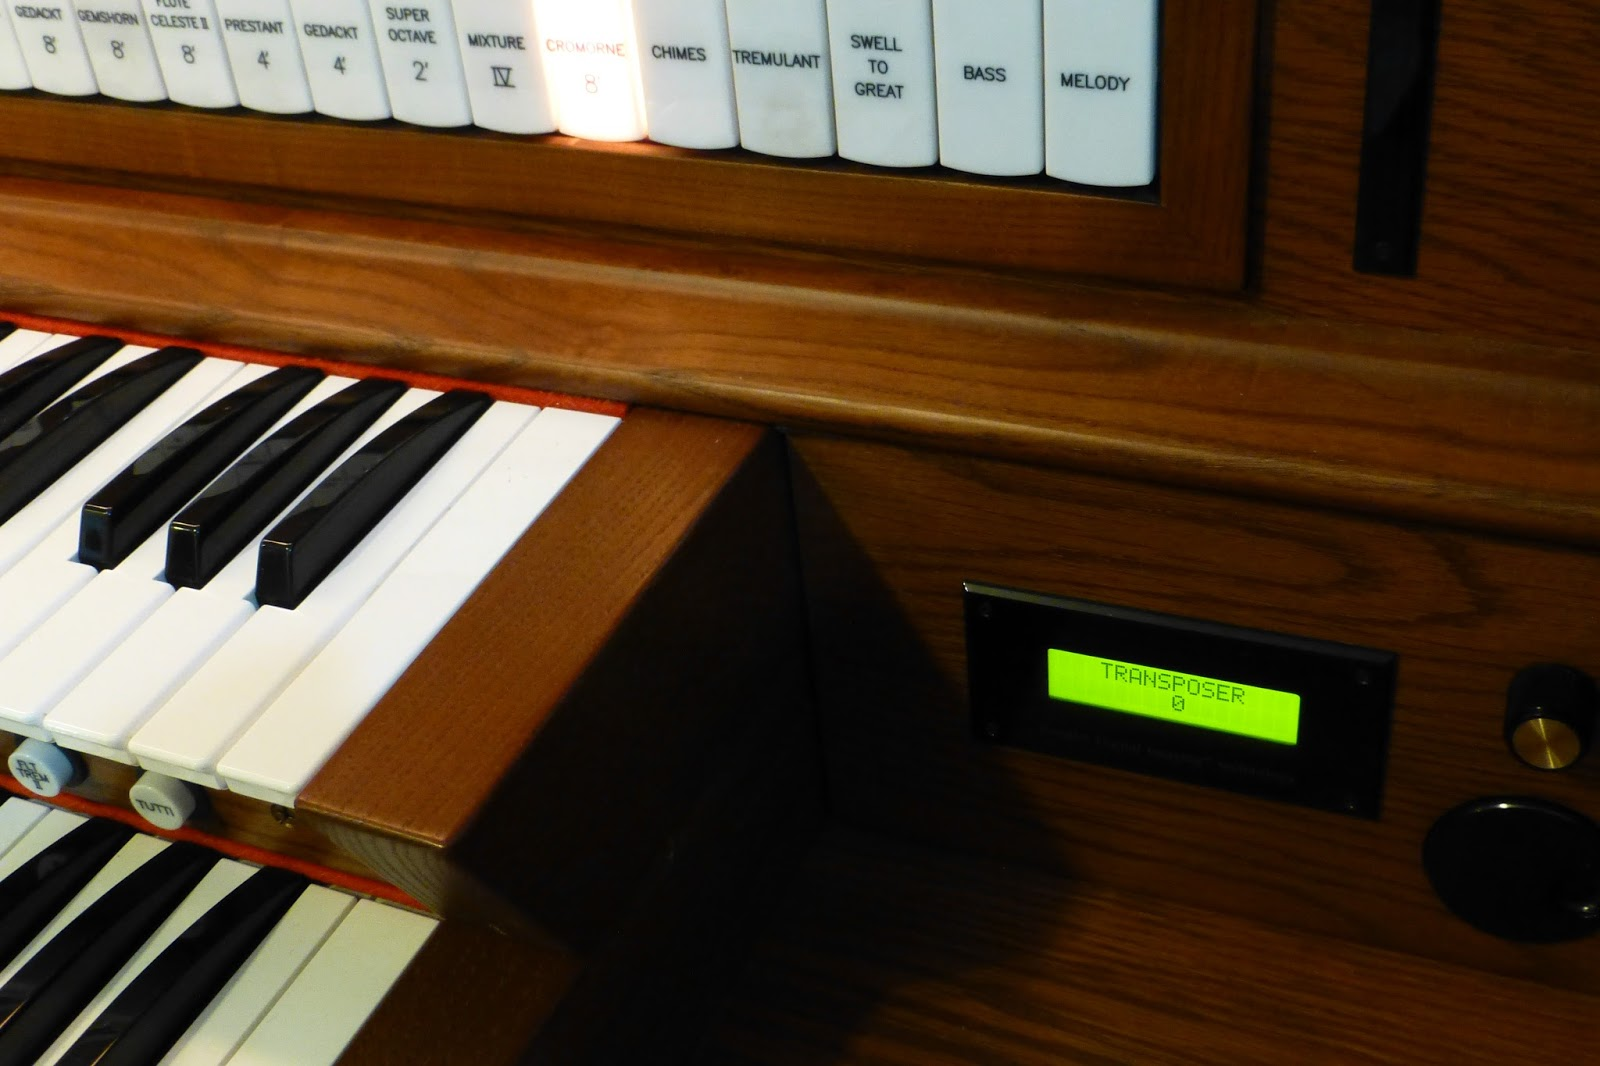 Available used Church Organs and instruments for Sale